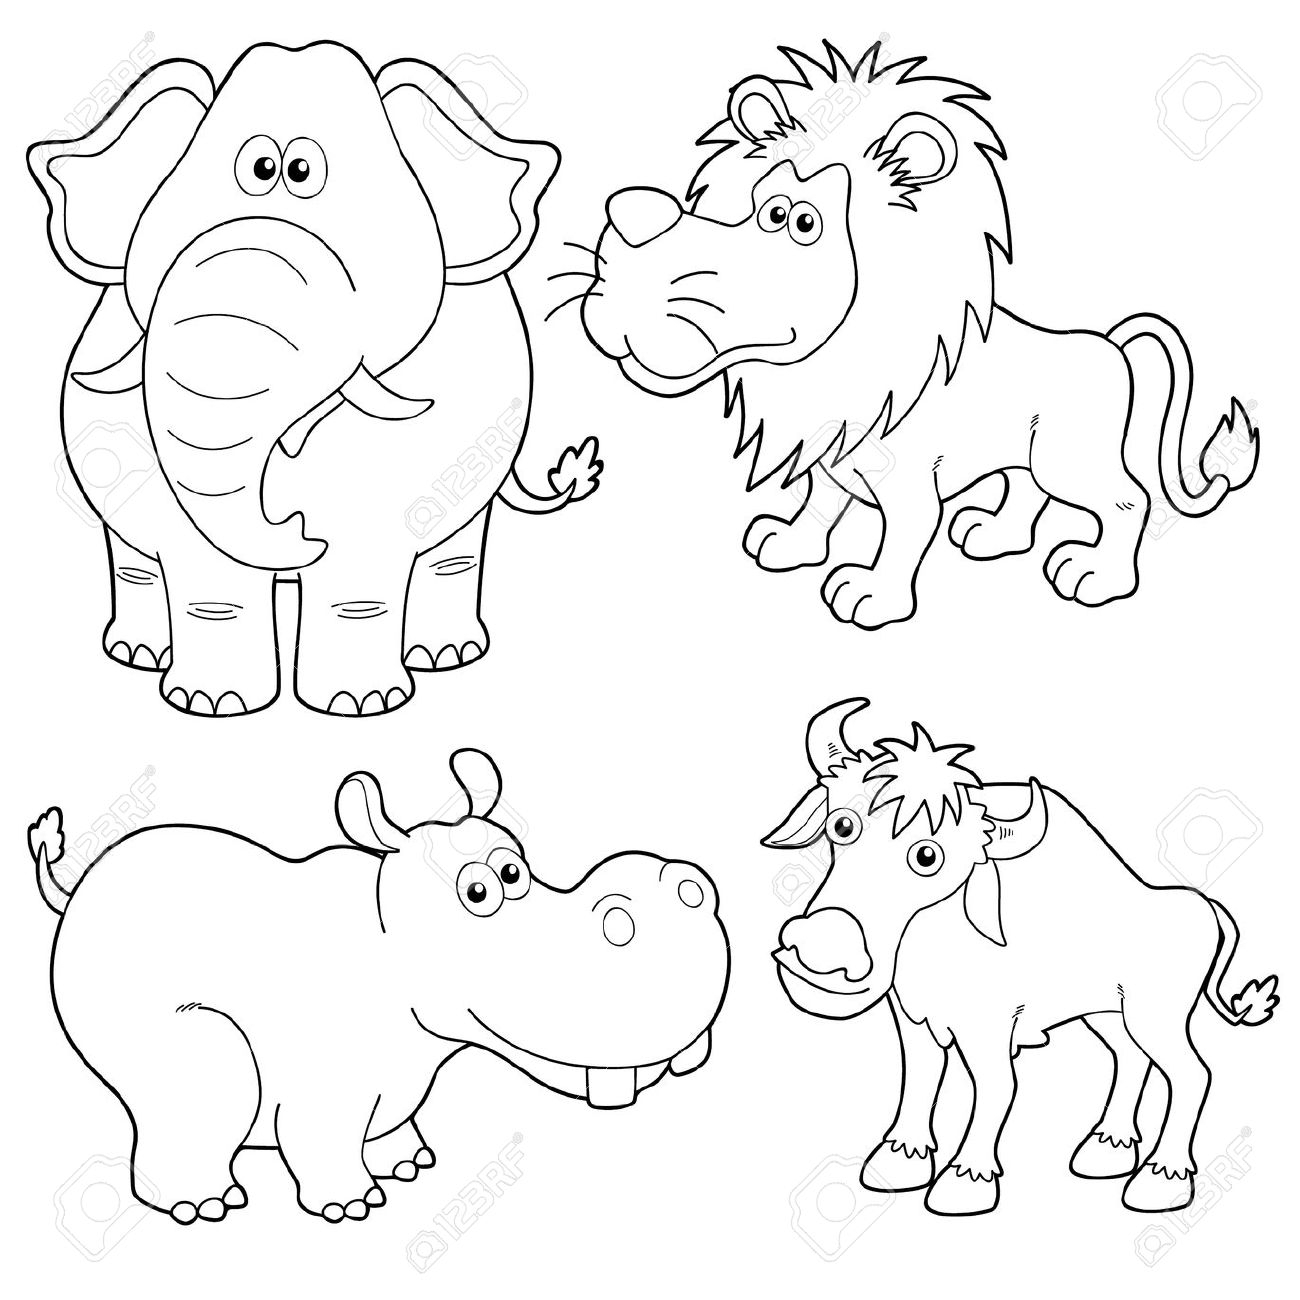 1300x1300 Drawing Outlines Of Animals Animal Outline Drawings Elephant